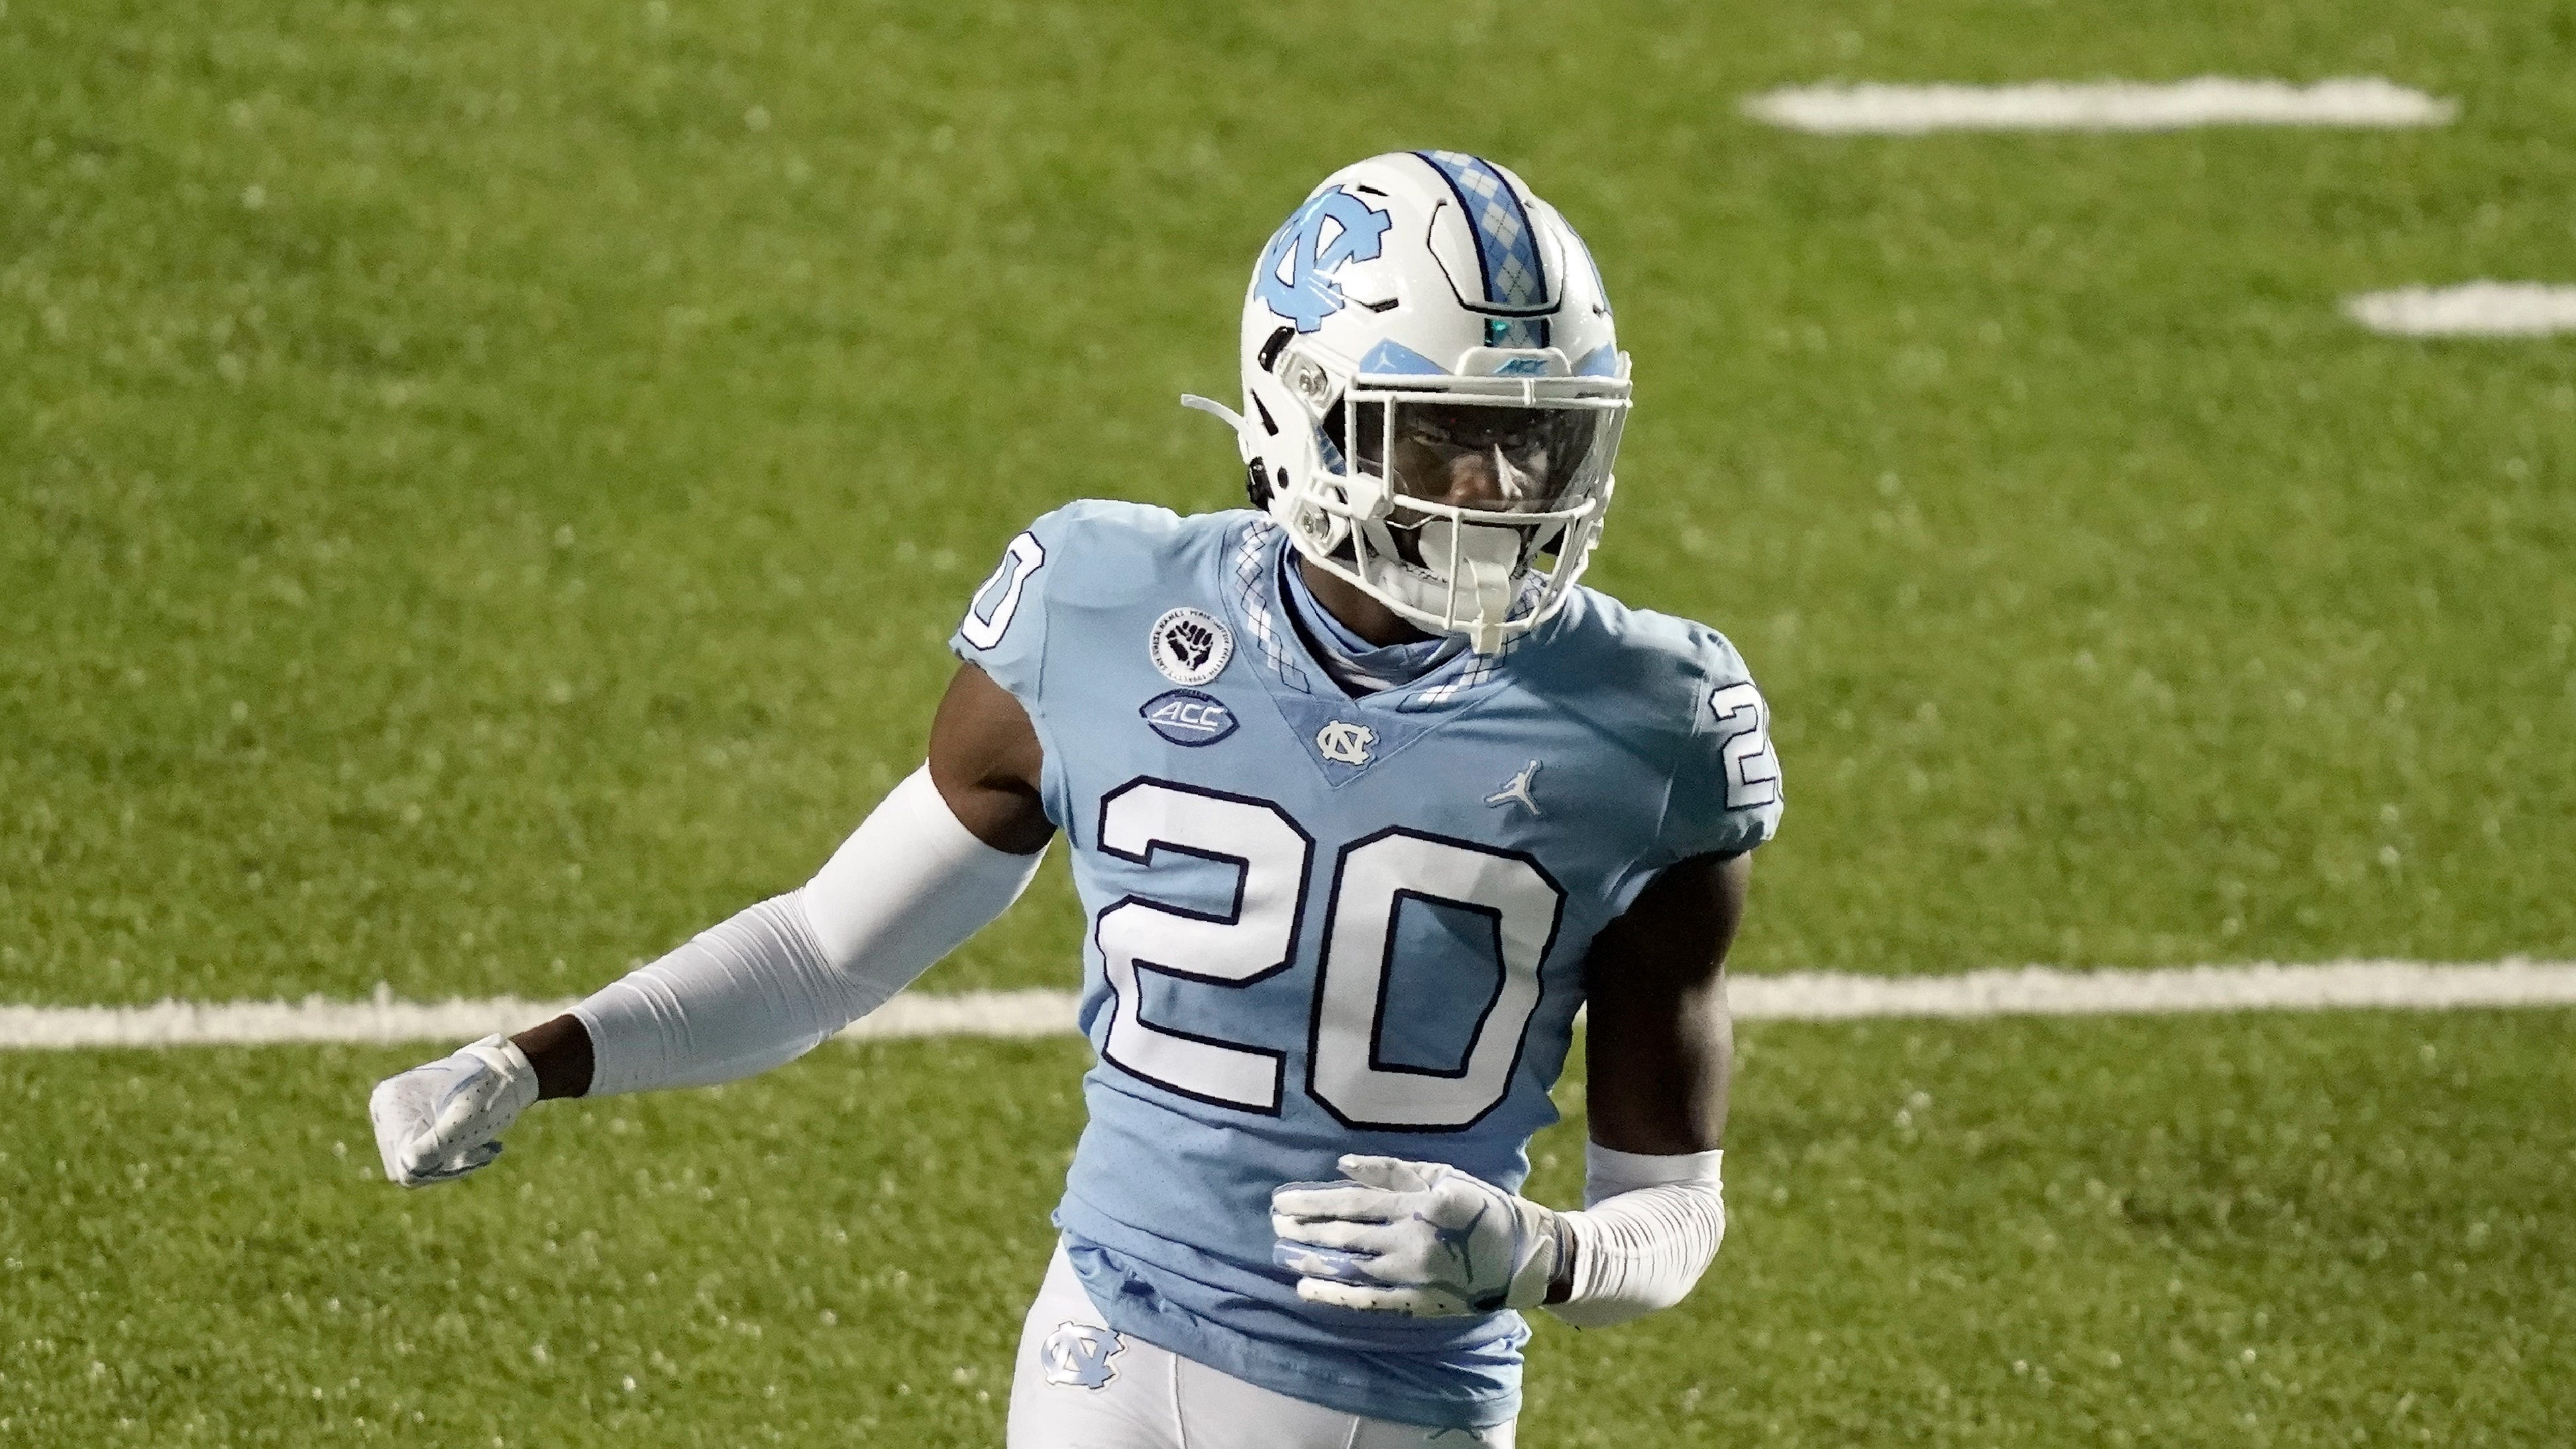 North Carolina defensive back Tony Grimes (20) runs a play against Notre Dame during the second half of an NCAA college football game in Chapel Hill, N.C., Friday, Nov. 27, 2020. (AP Photo/Gerry Broome)